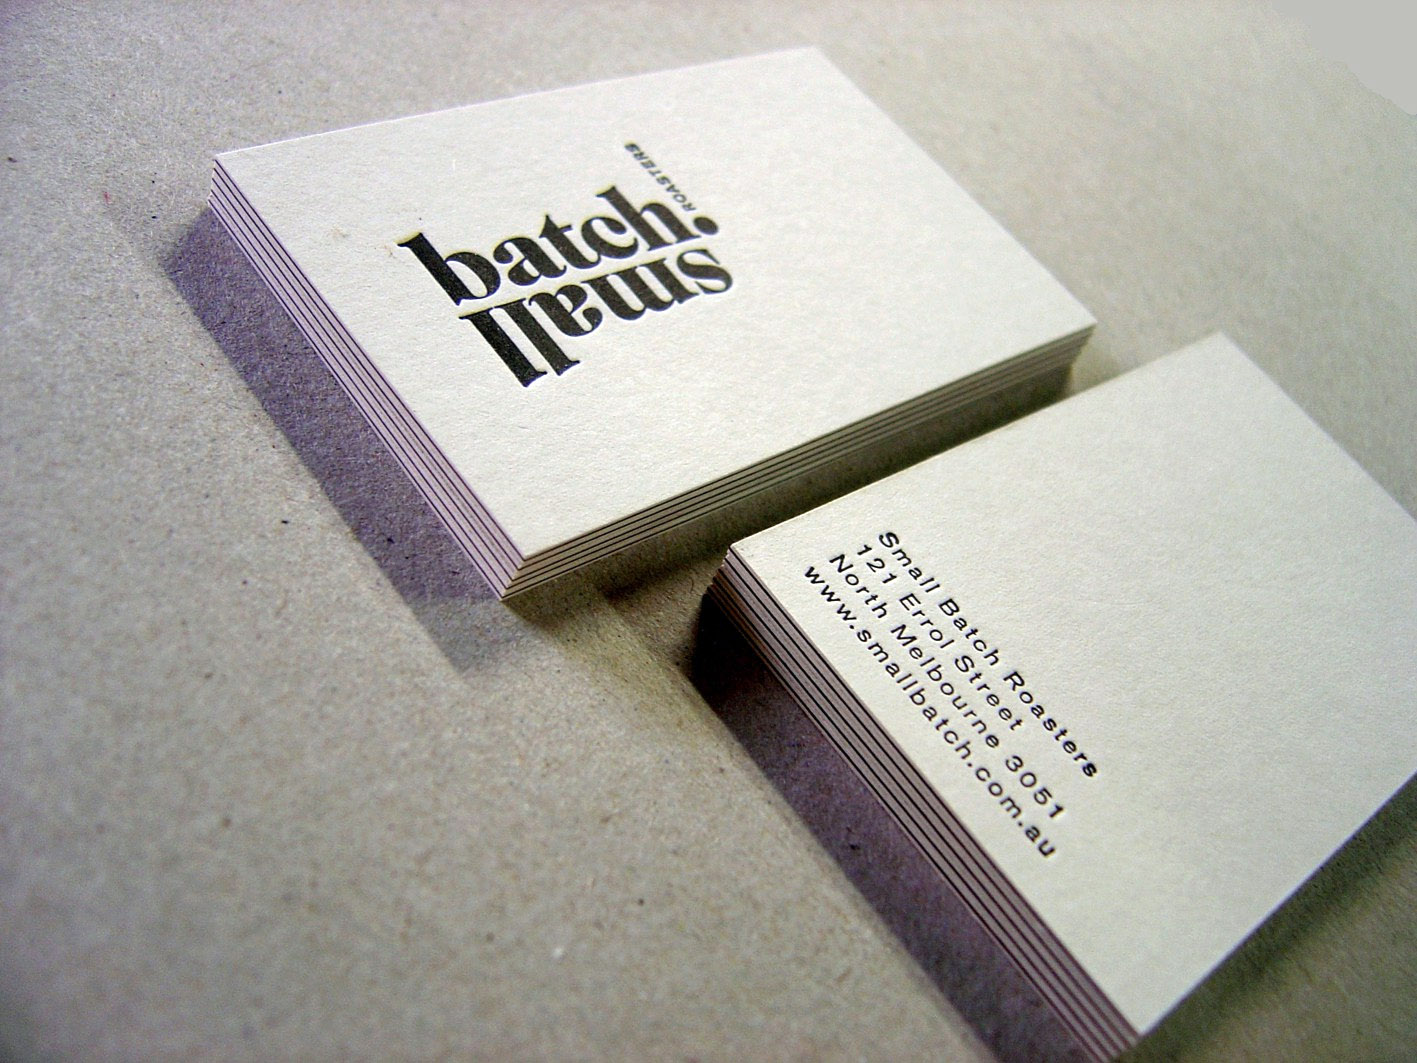 Letterpress business card broadsheet media cardrabbit creative triplex business cards small batch roasters reheart Choice Image